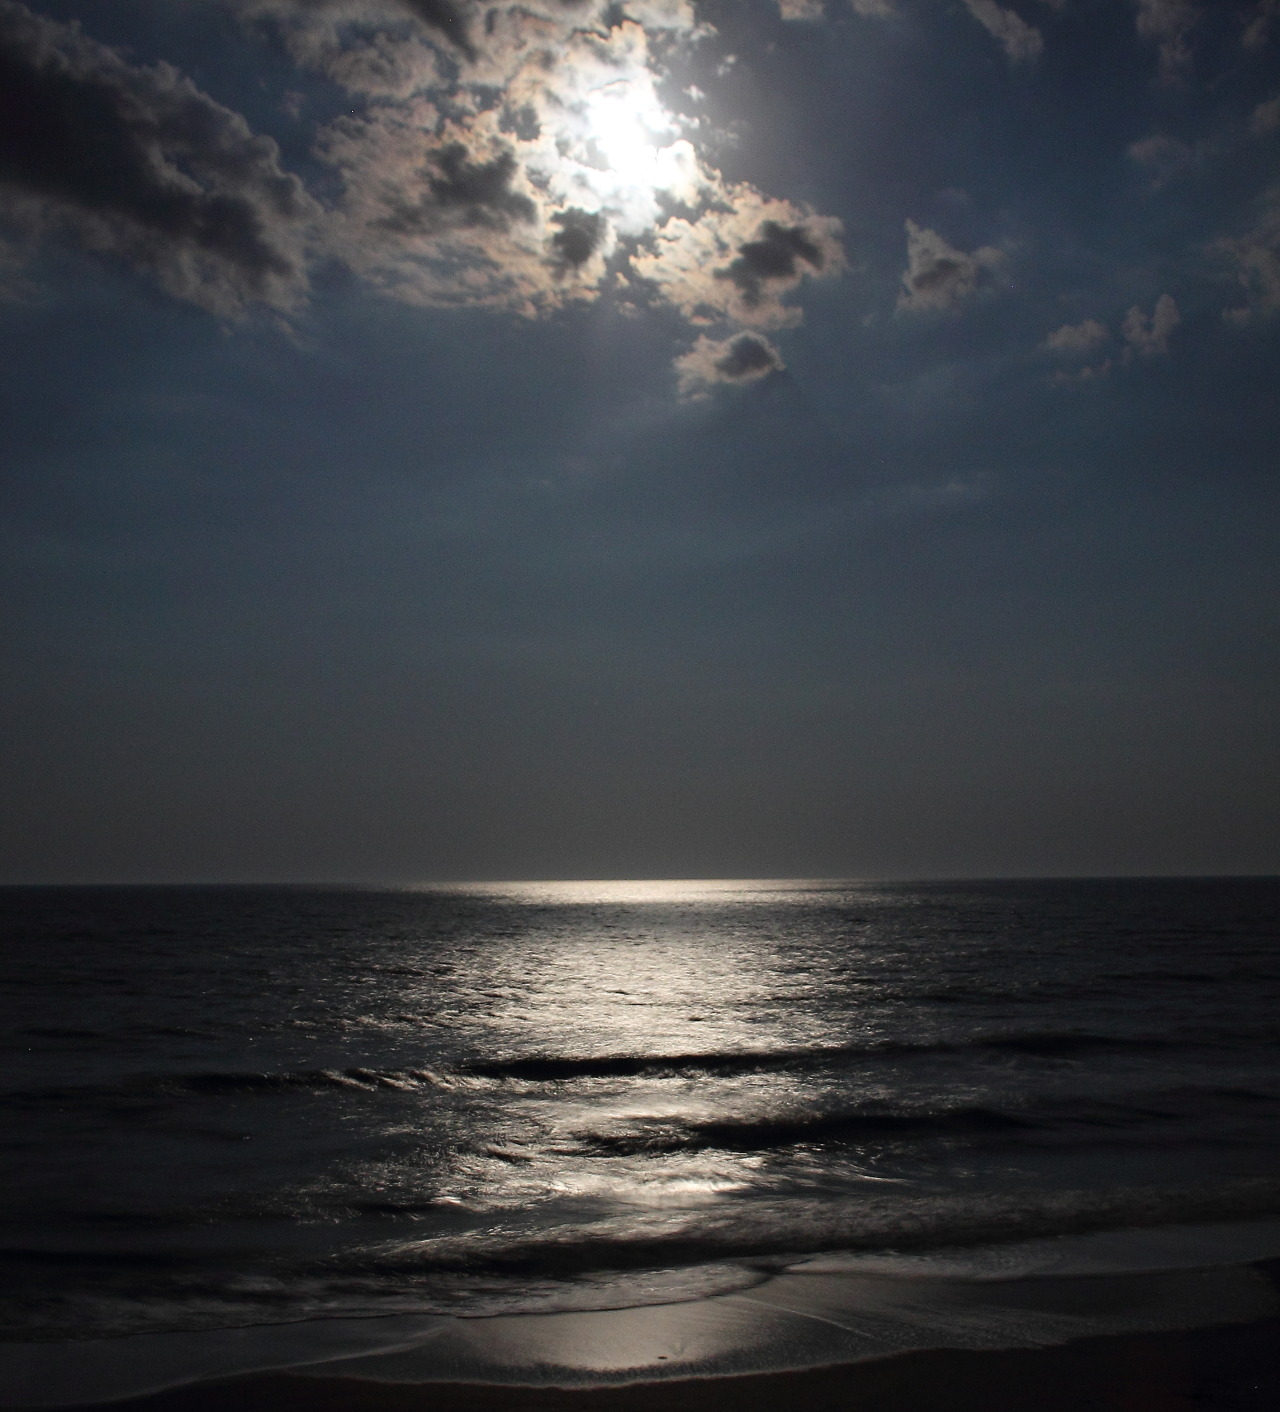 Moonlit beach, South Ponte Vedra, Florida.  2015